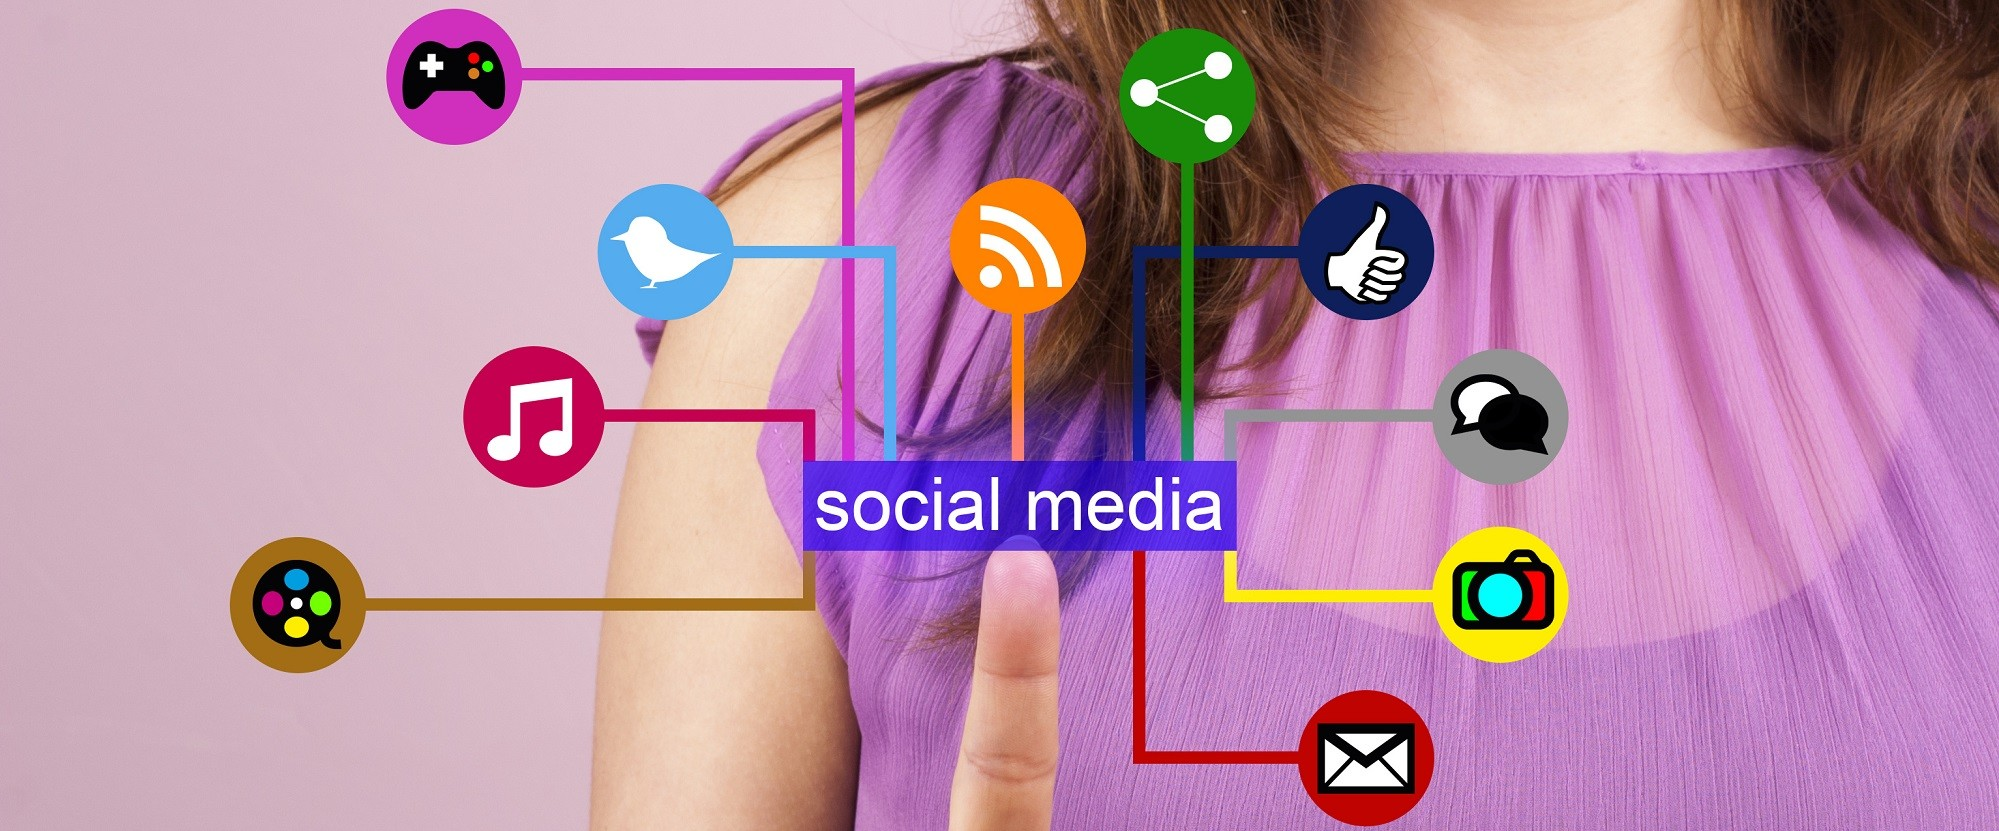 How To Promote Your Website On Social Media?